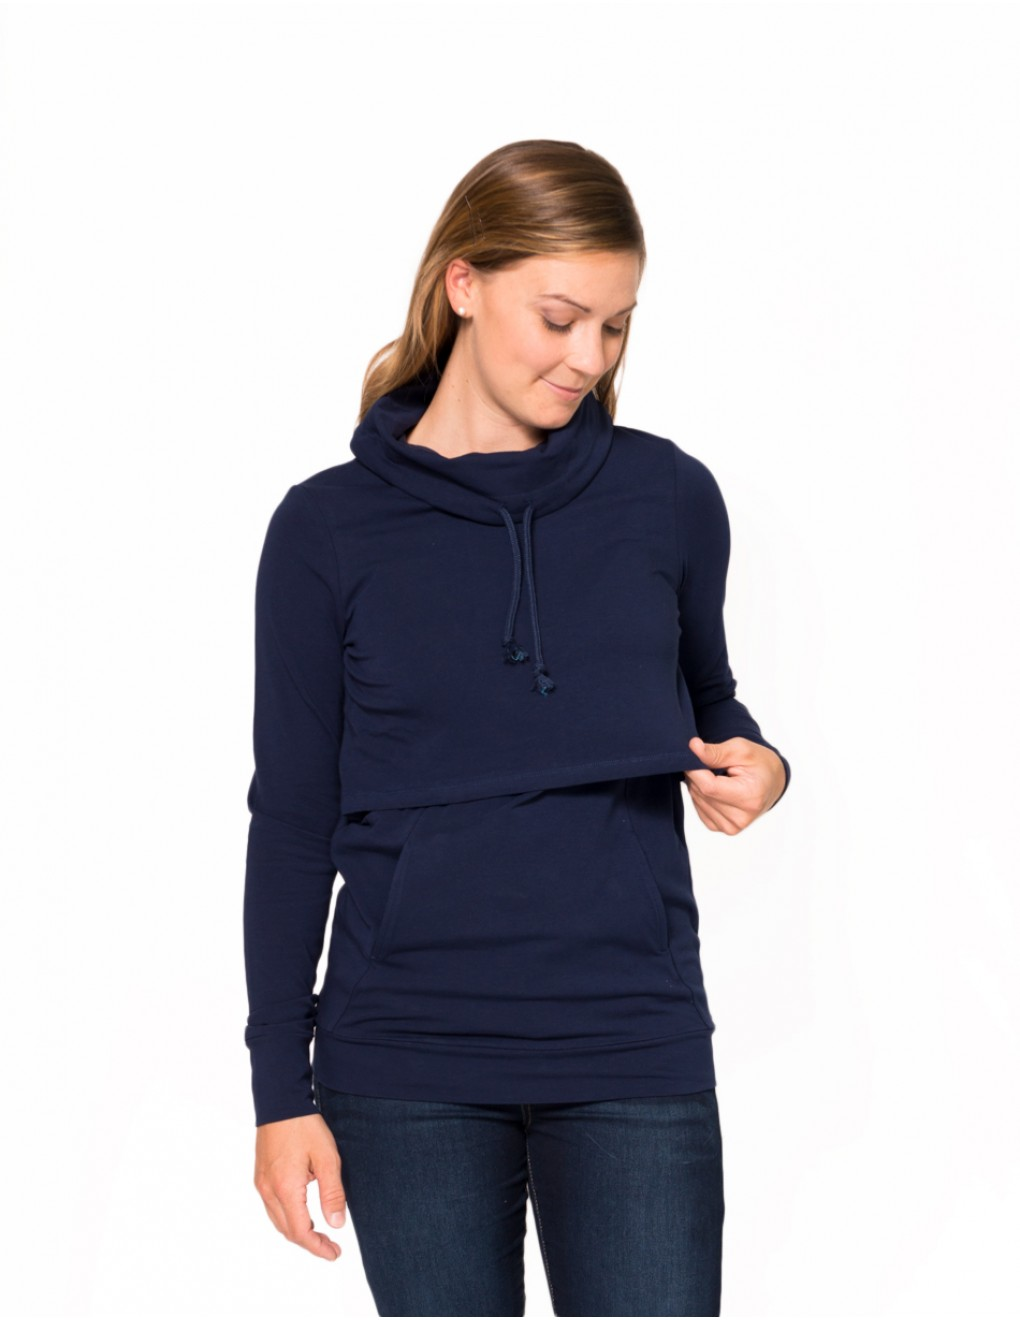 momzelle-new-turtleneck-deep-sea-blue-nursing-top-opening.jpg